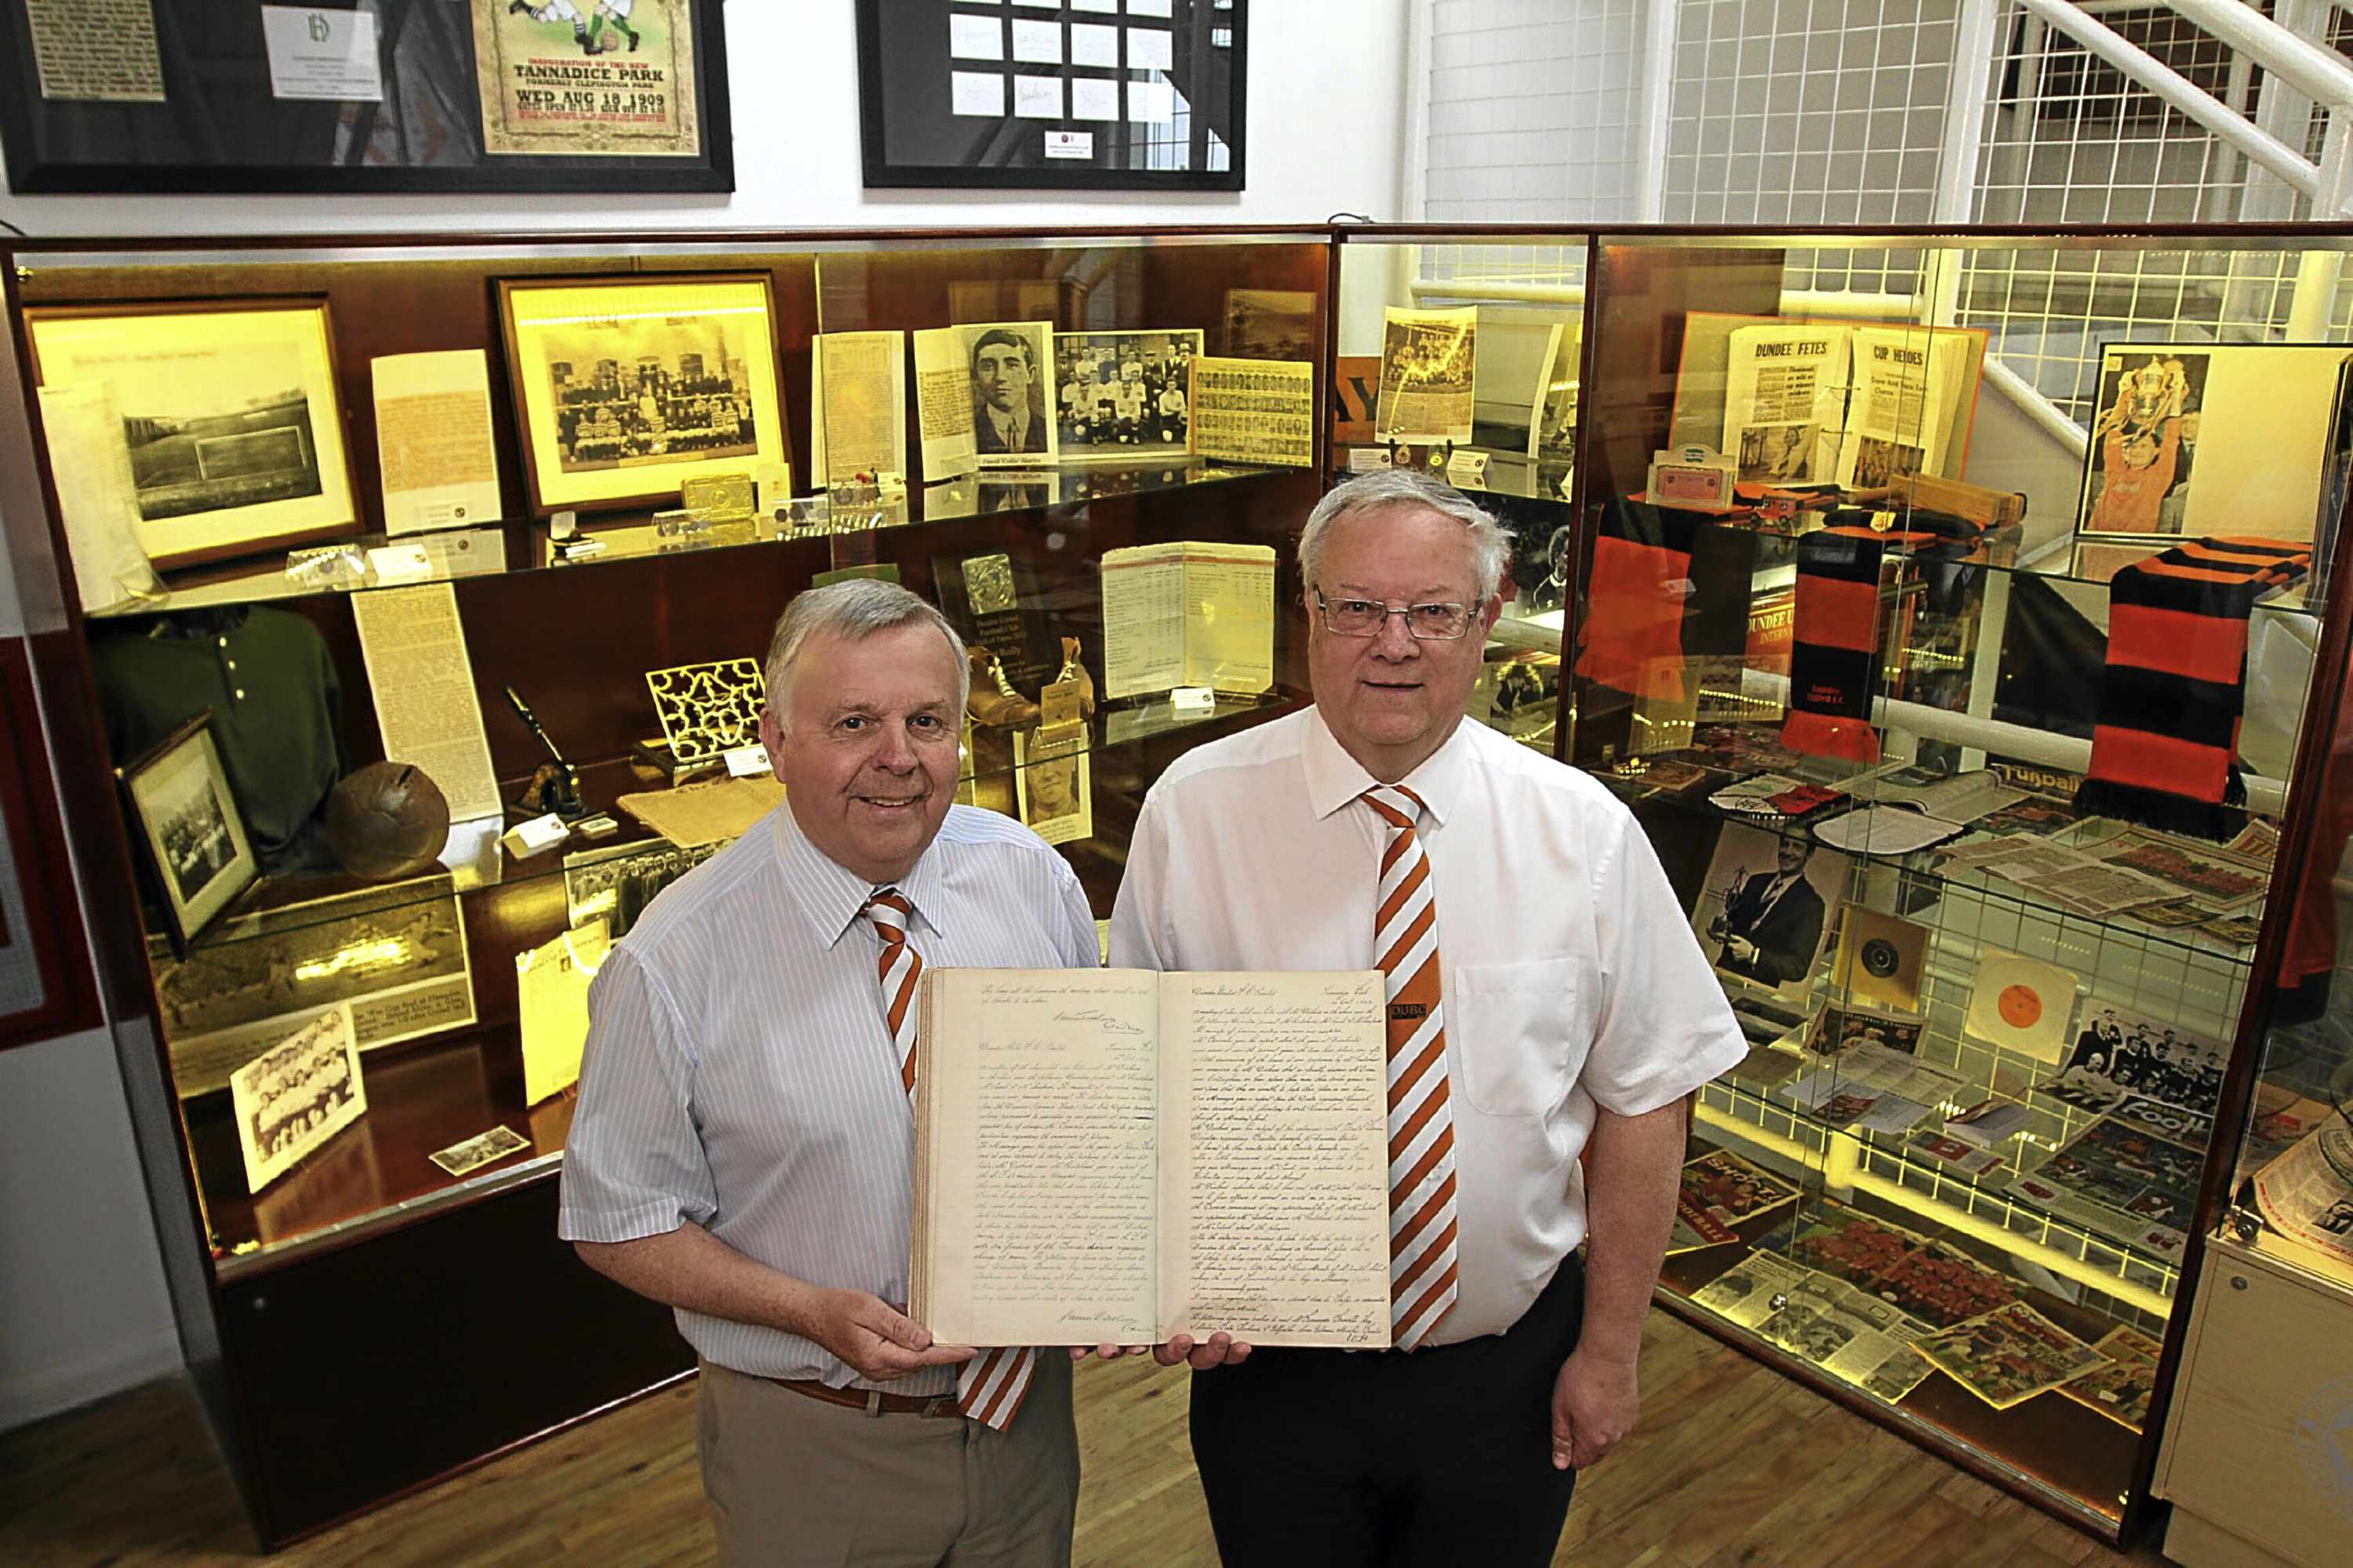 Tom Cairns (left) and Peter McBride, who have put together the new Dundee United museum at Tannadice, hold a minute book of board meetings from the 1920s.